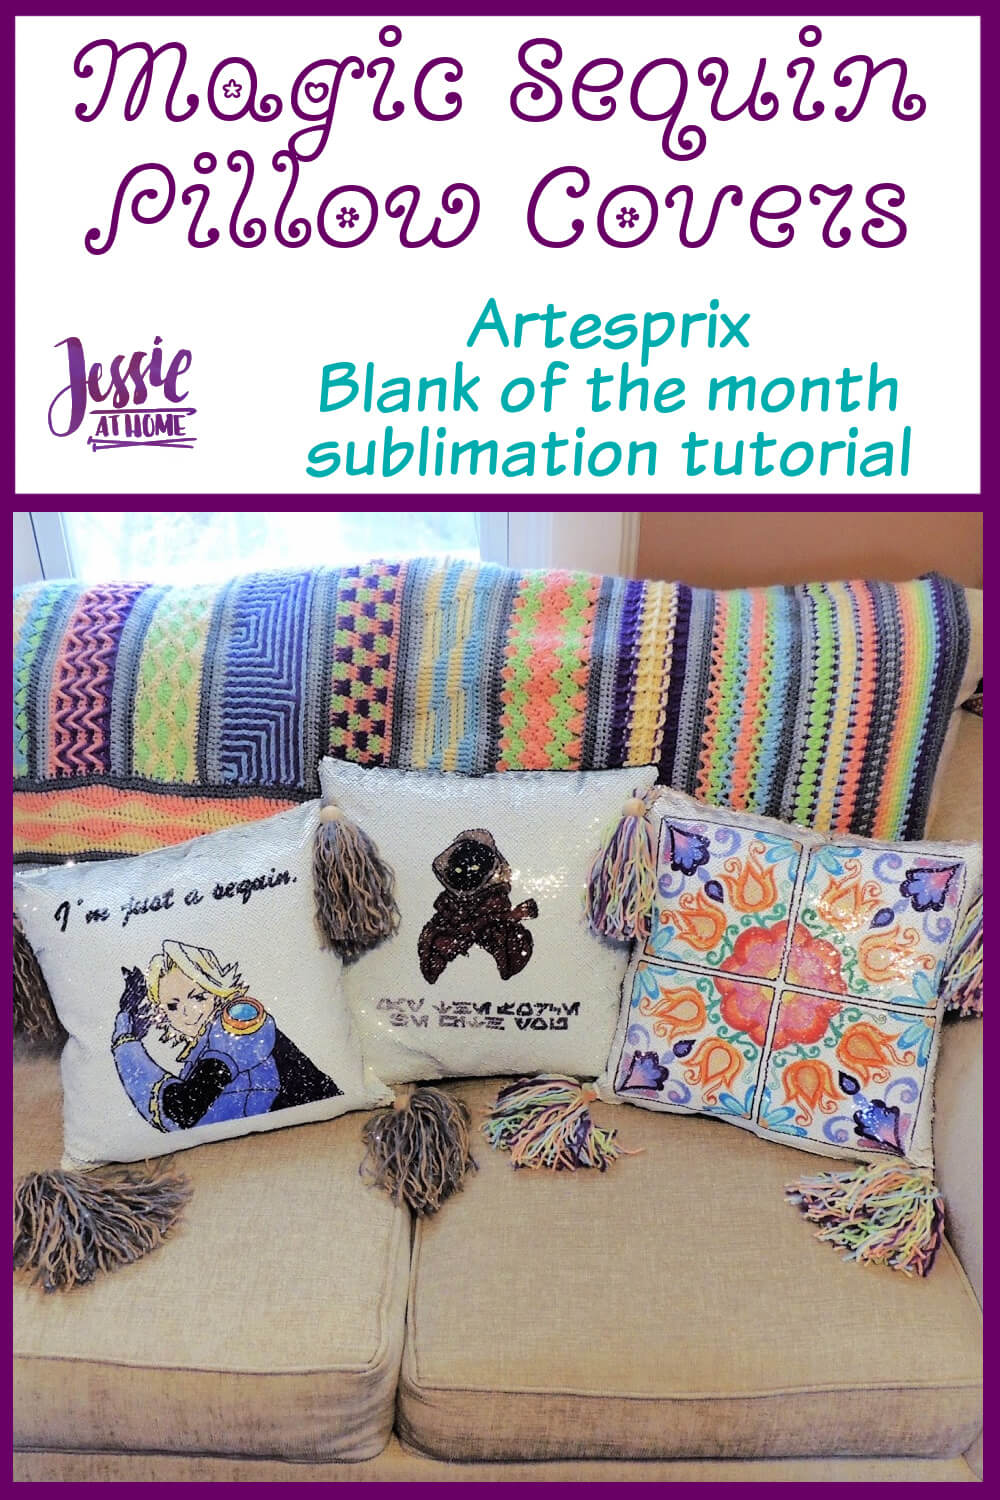 Sublimation Magic Sequin Pillow Covers - Artesprix Blank of the Month